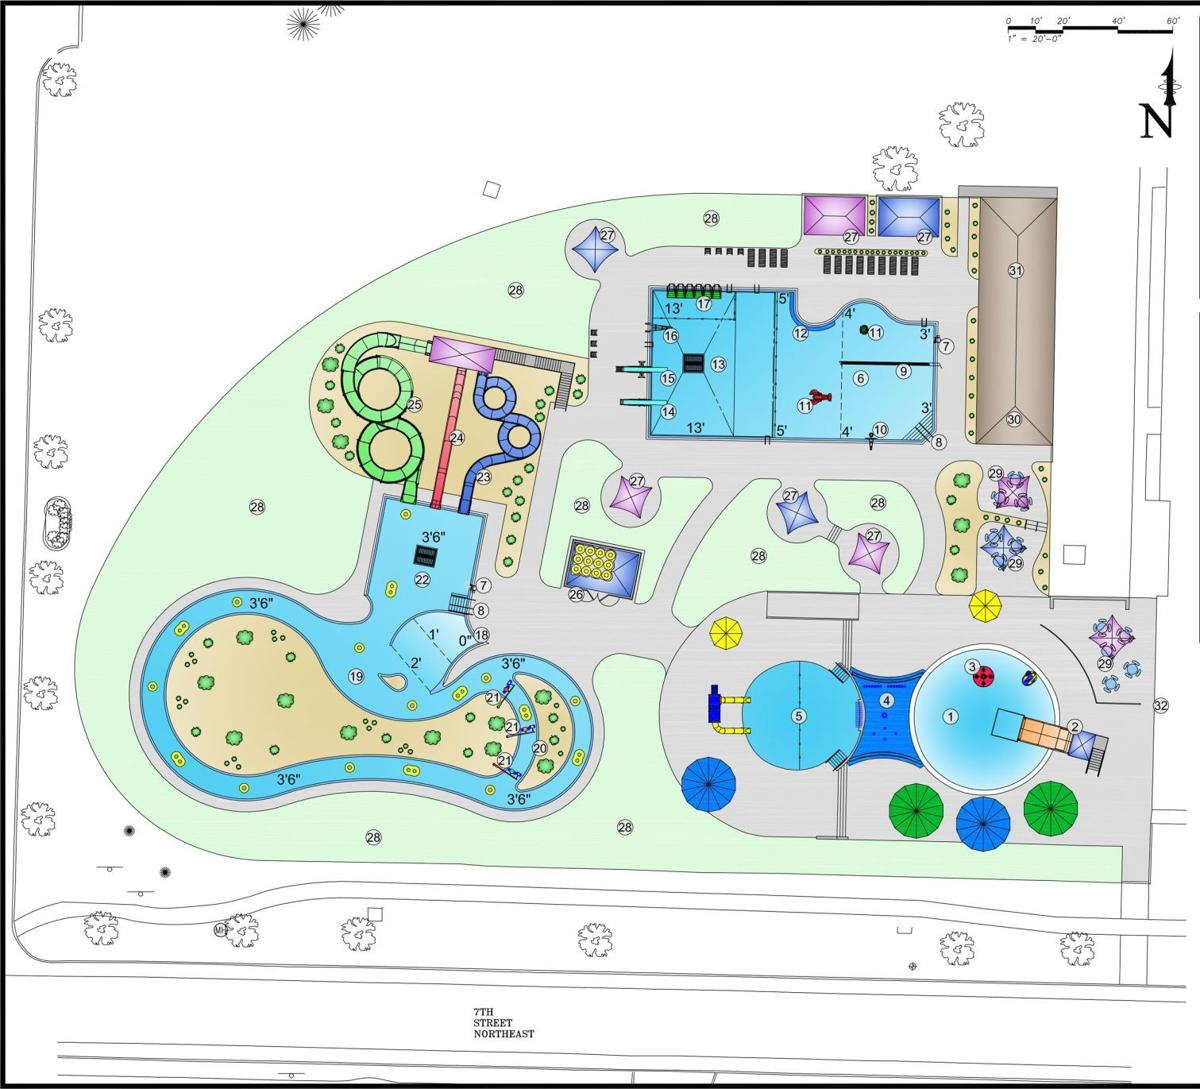 Sioux Center Considers 6m Expansion Of